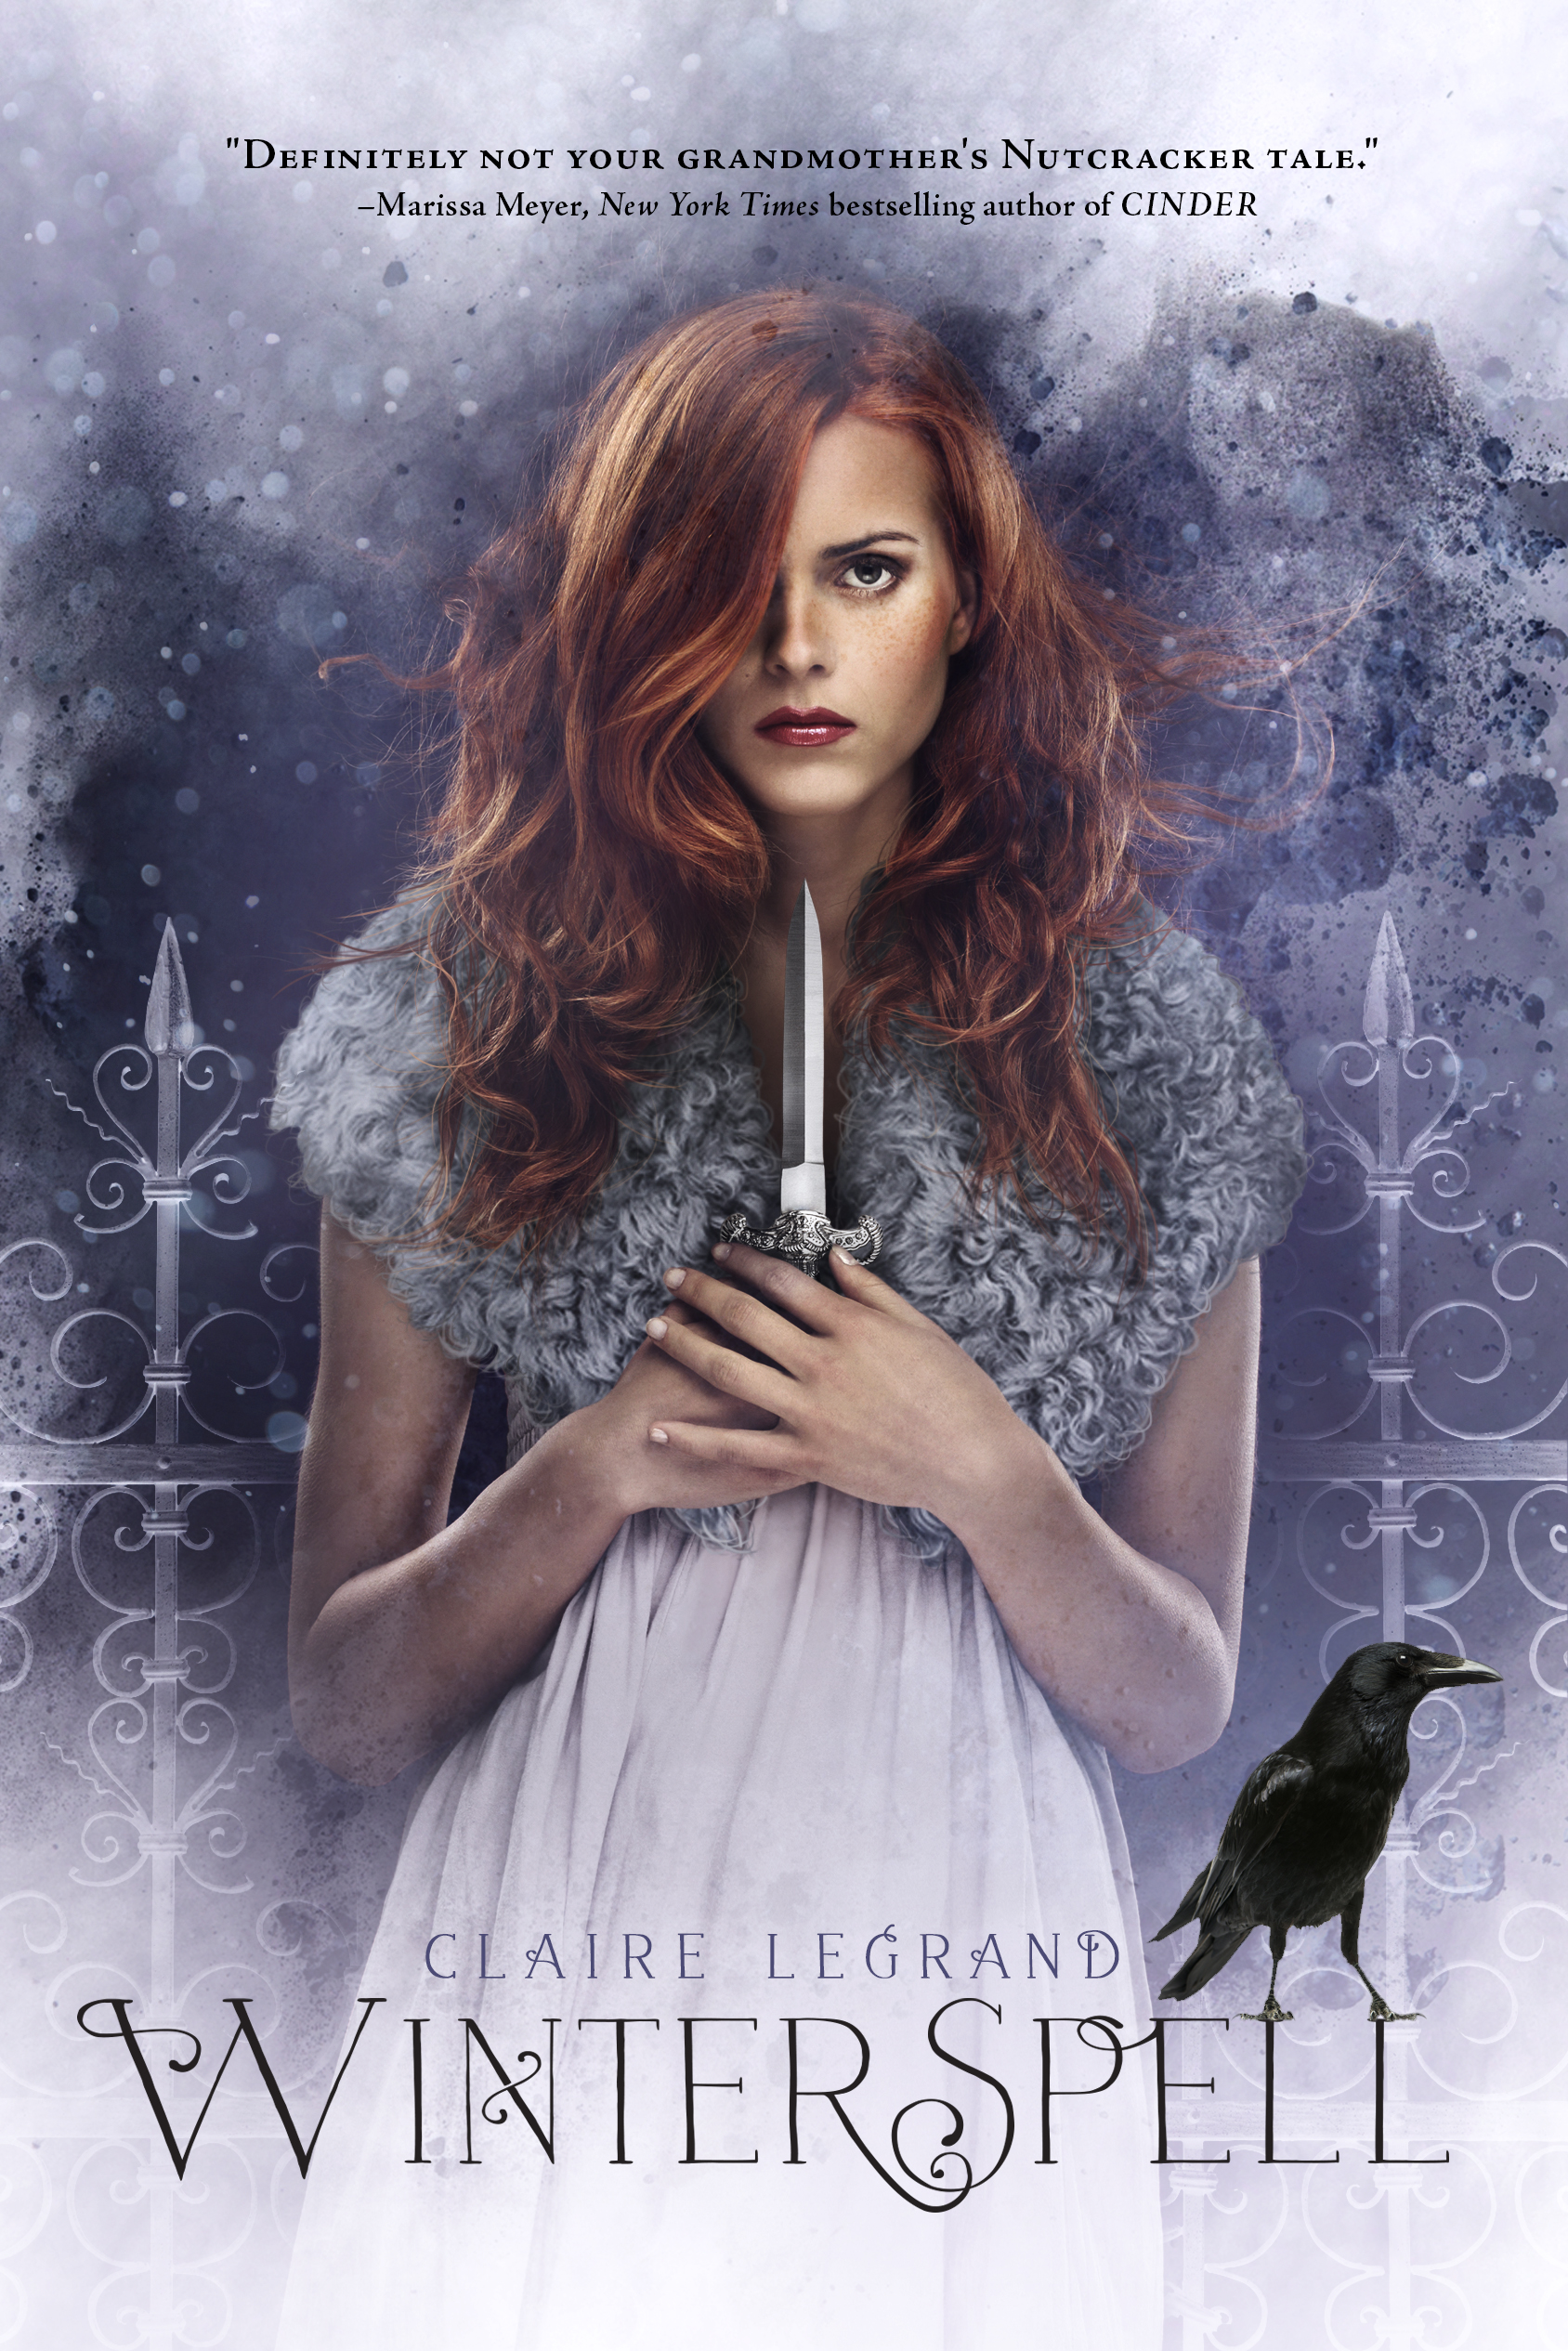 A Smugglerific Cover (& Giveaway): Winterspell by Claire Legrand